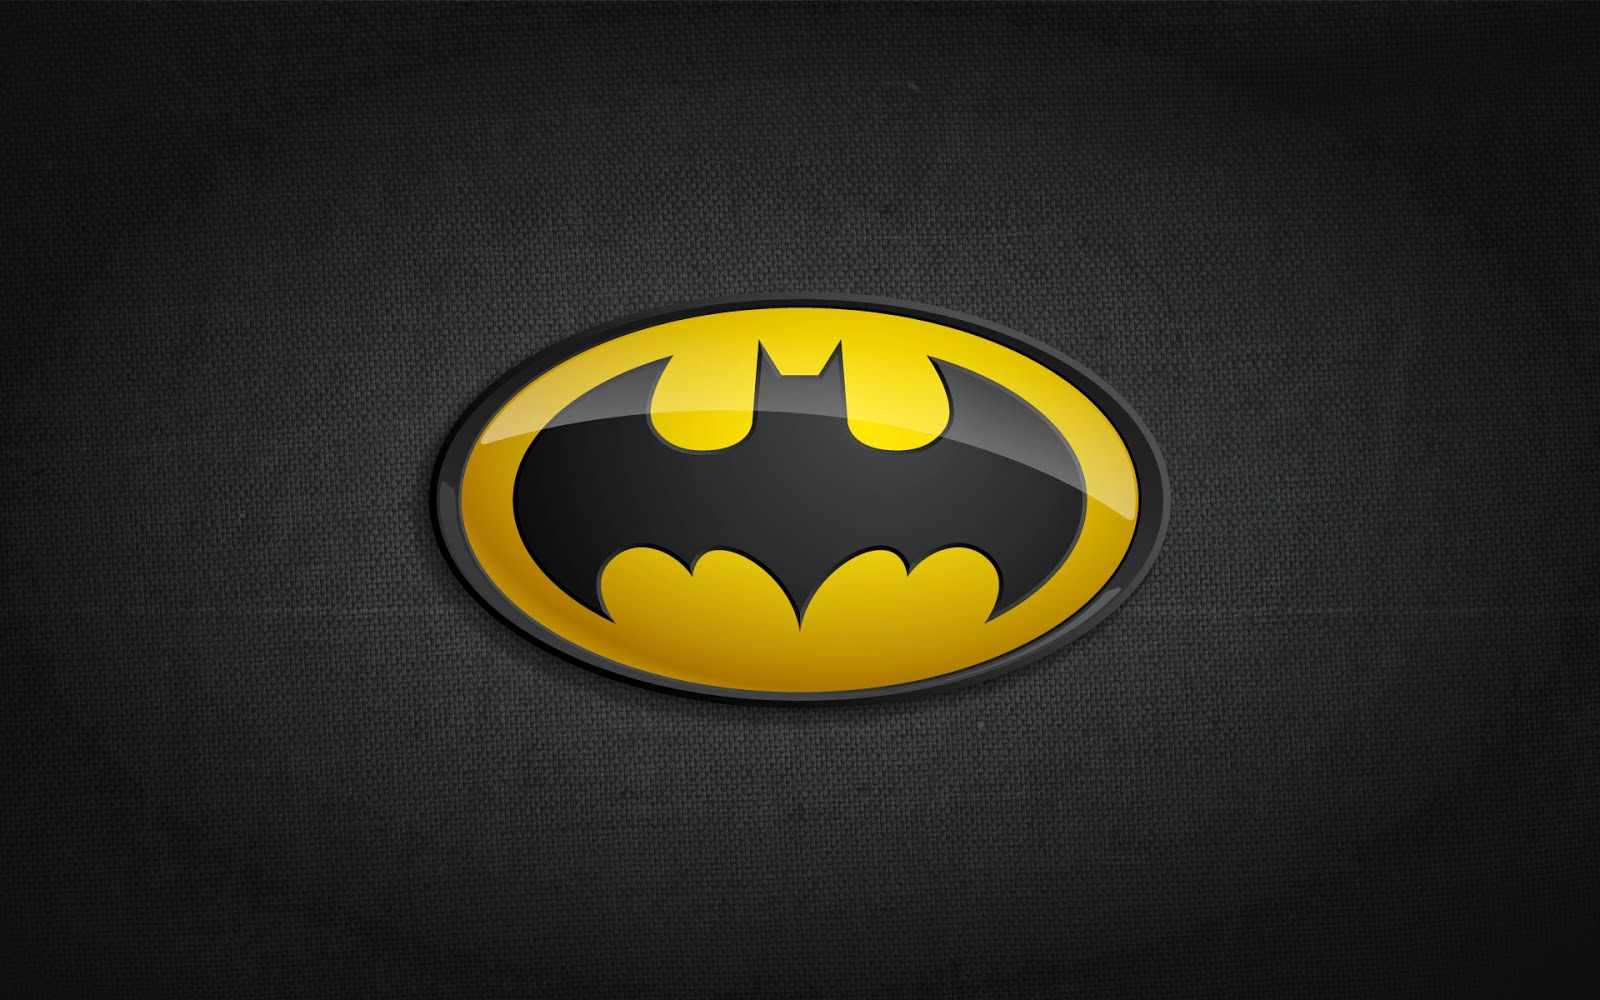 Batman Sign Wallpaper